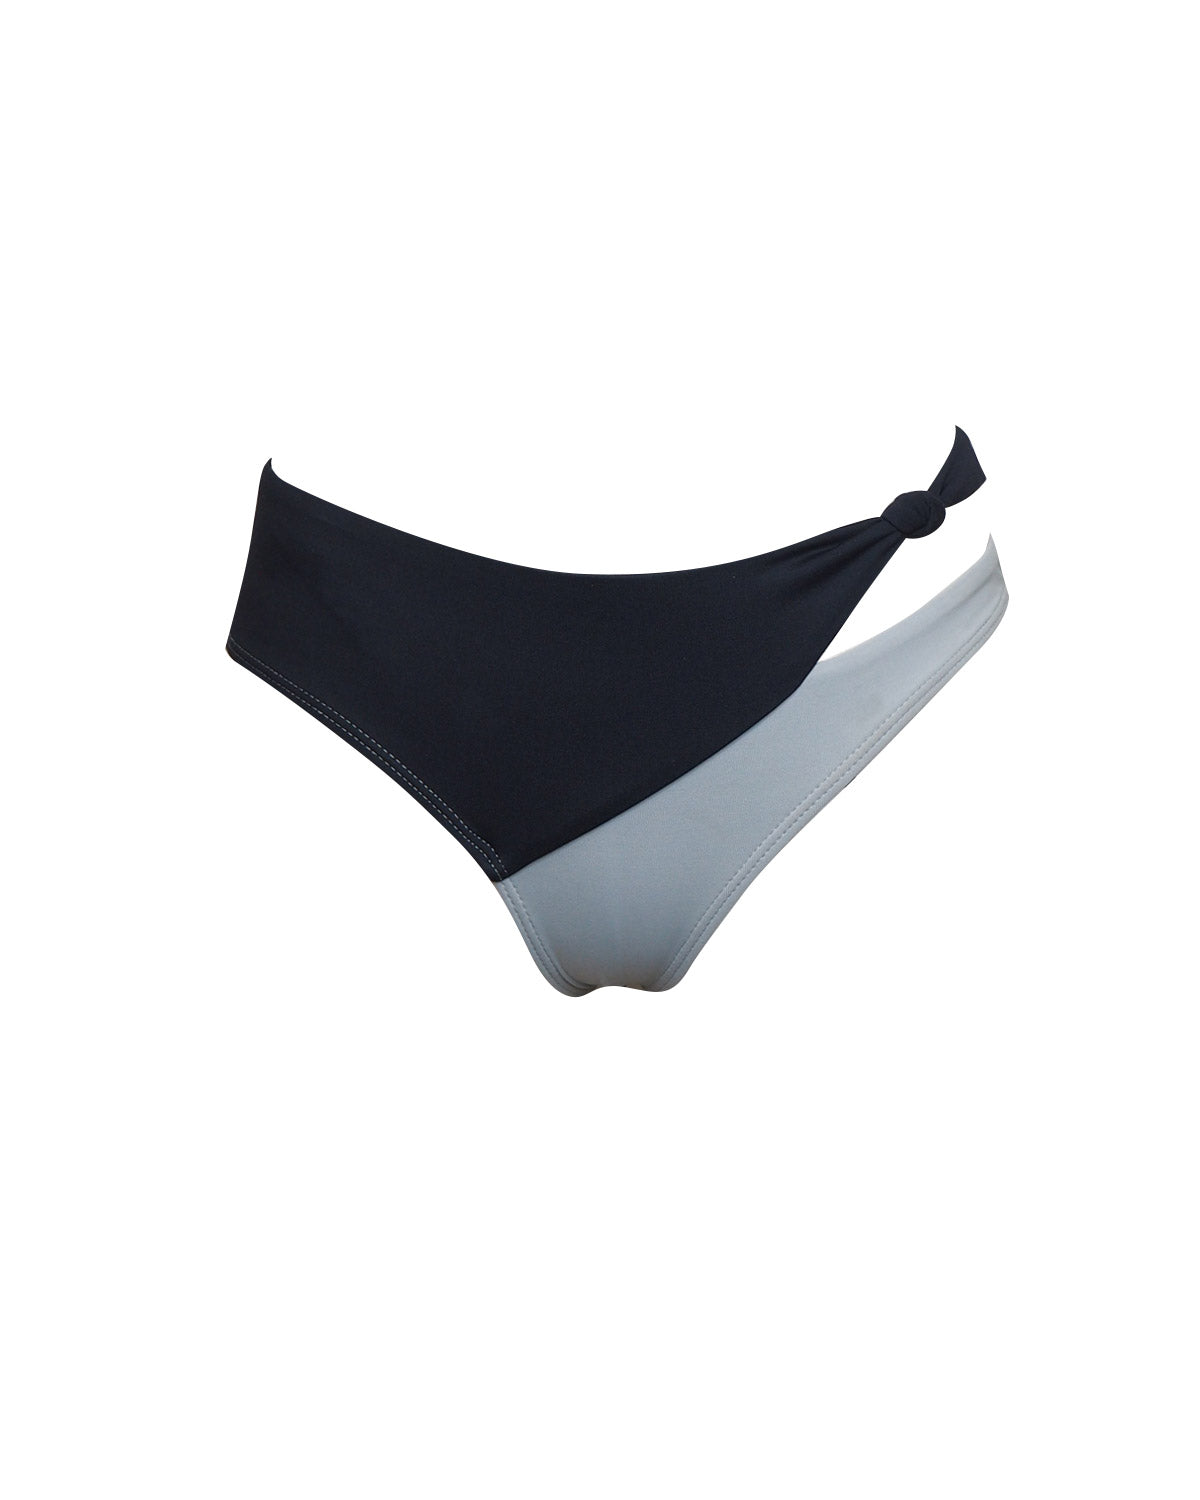 BONDI BOTTOM | BLACK/GREY